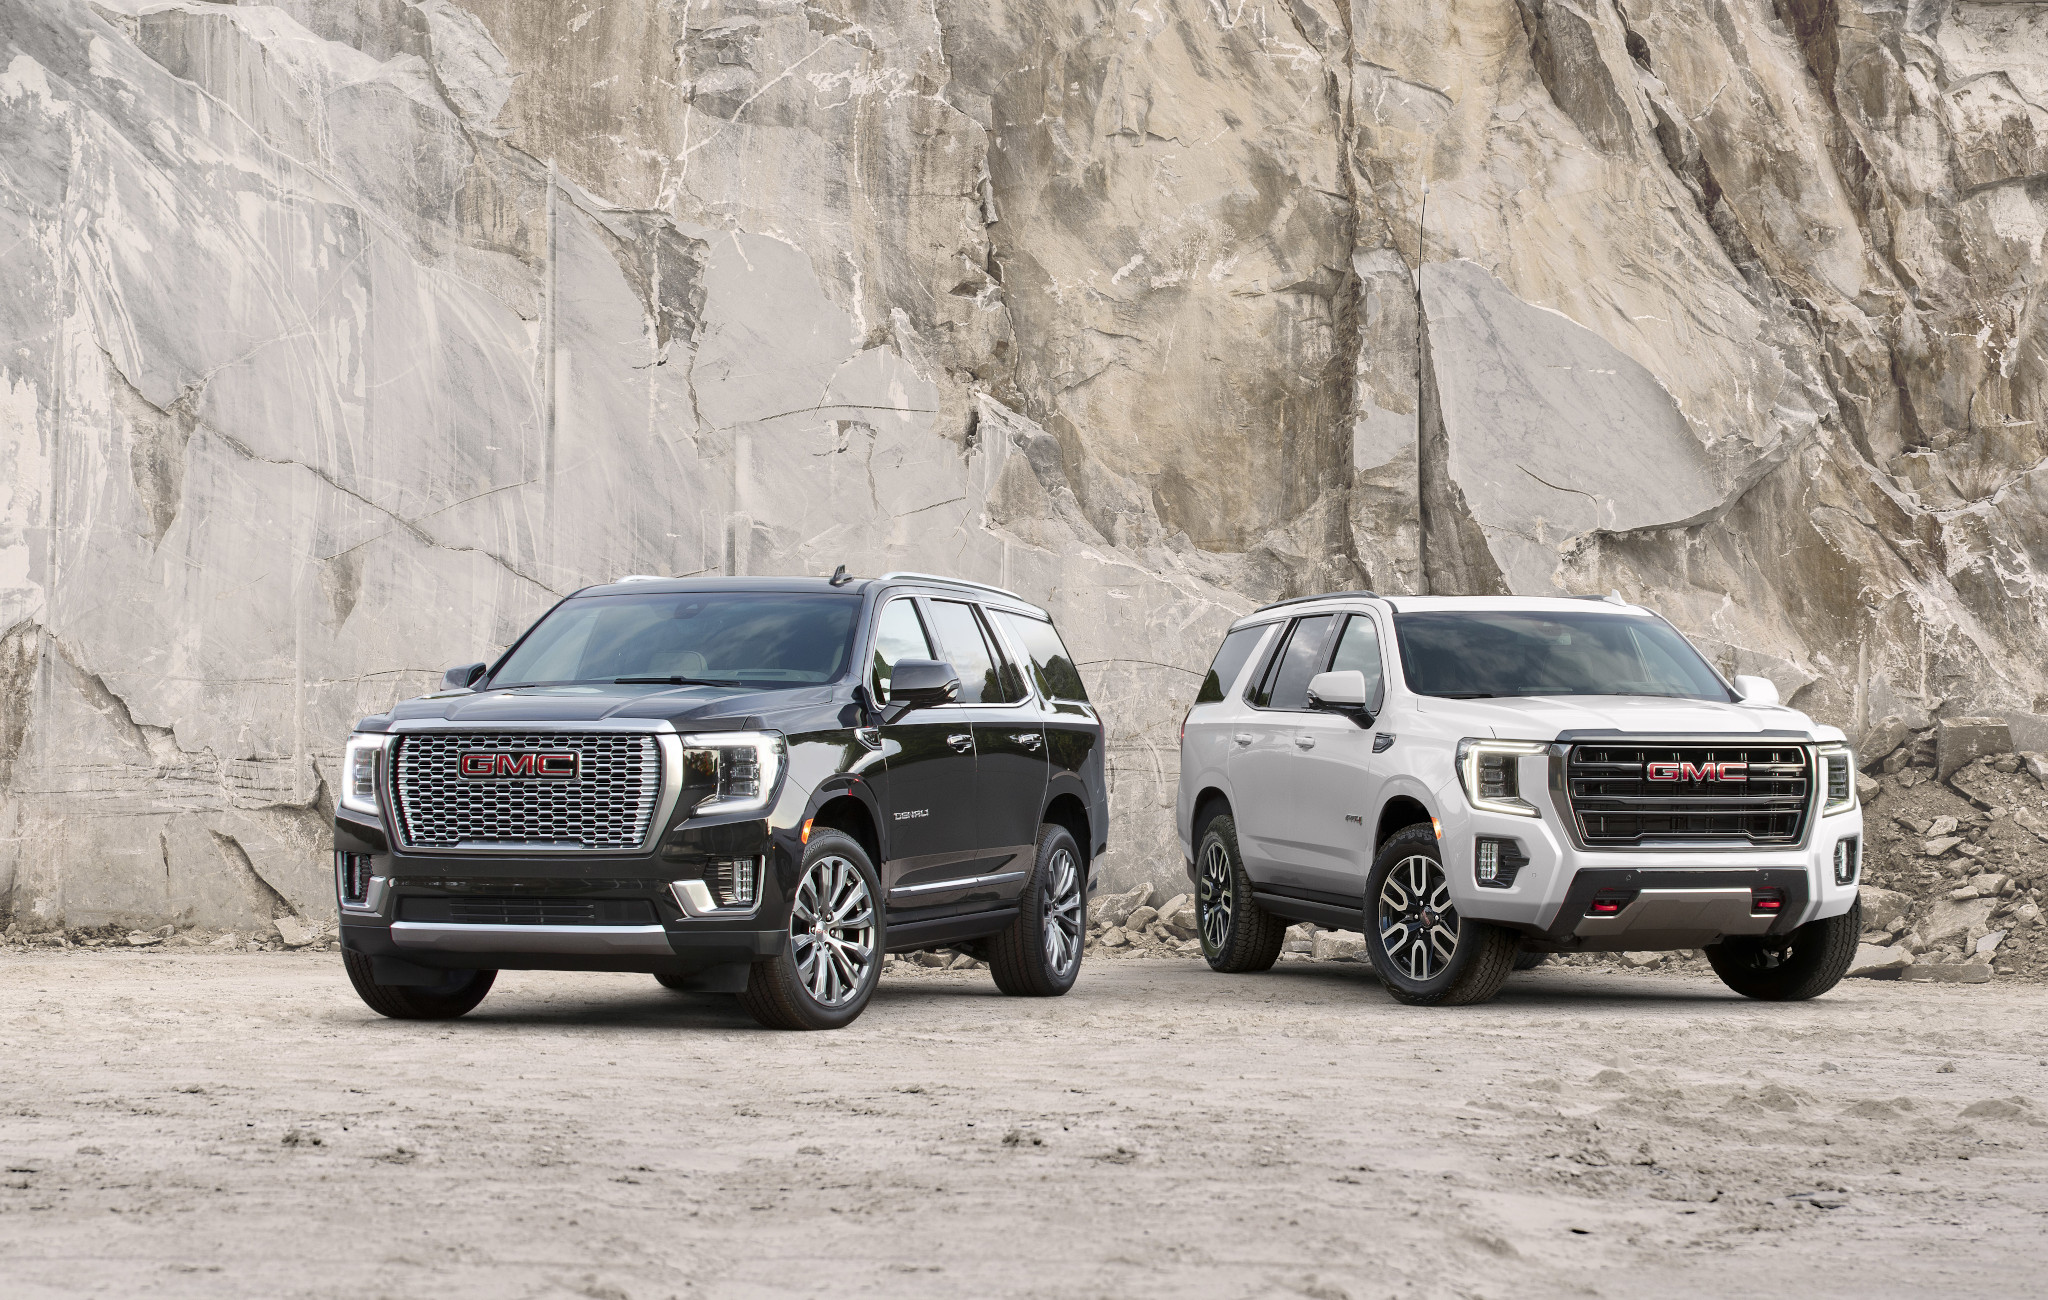 2021 GMC Yukon, Yukon XL: Growing in the Right Ways